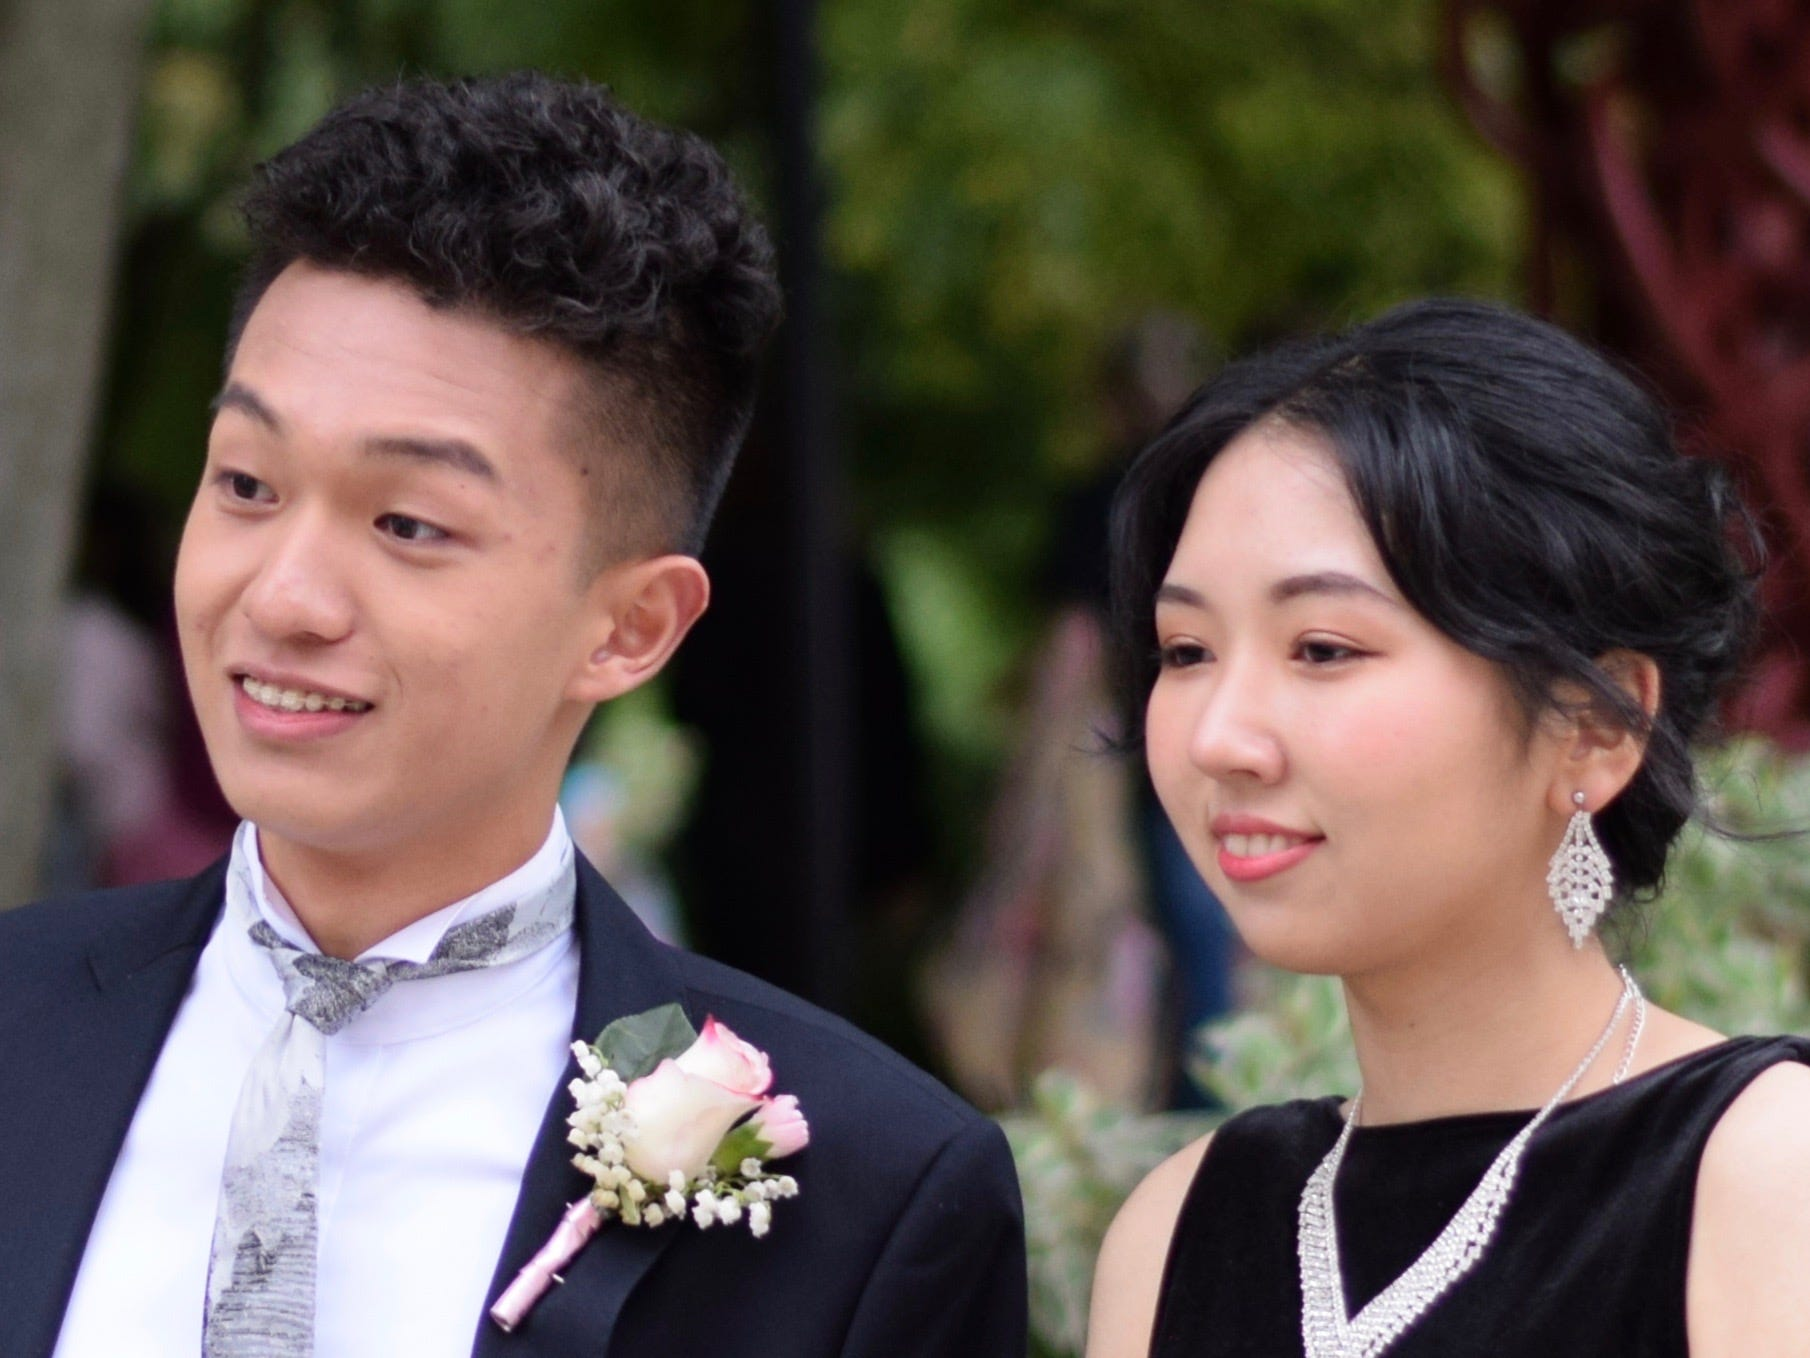 York Country Day School students attended prom Saturday, May 11, 2019. (Jennifer King photo)